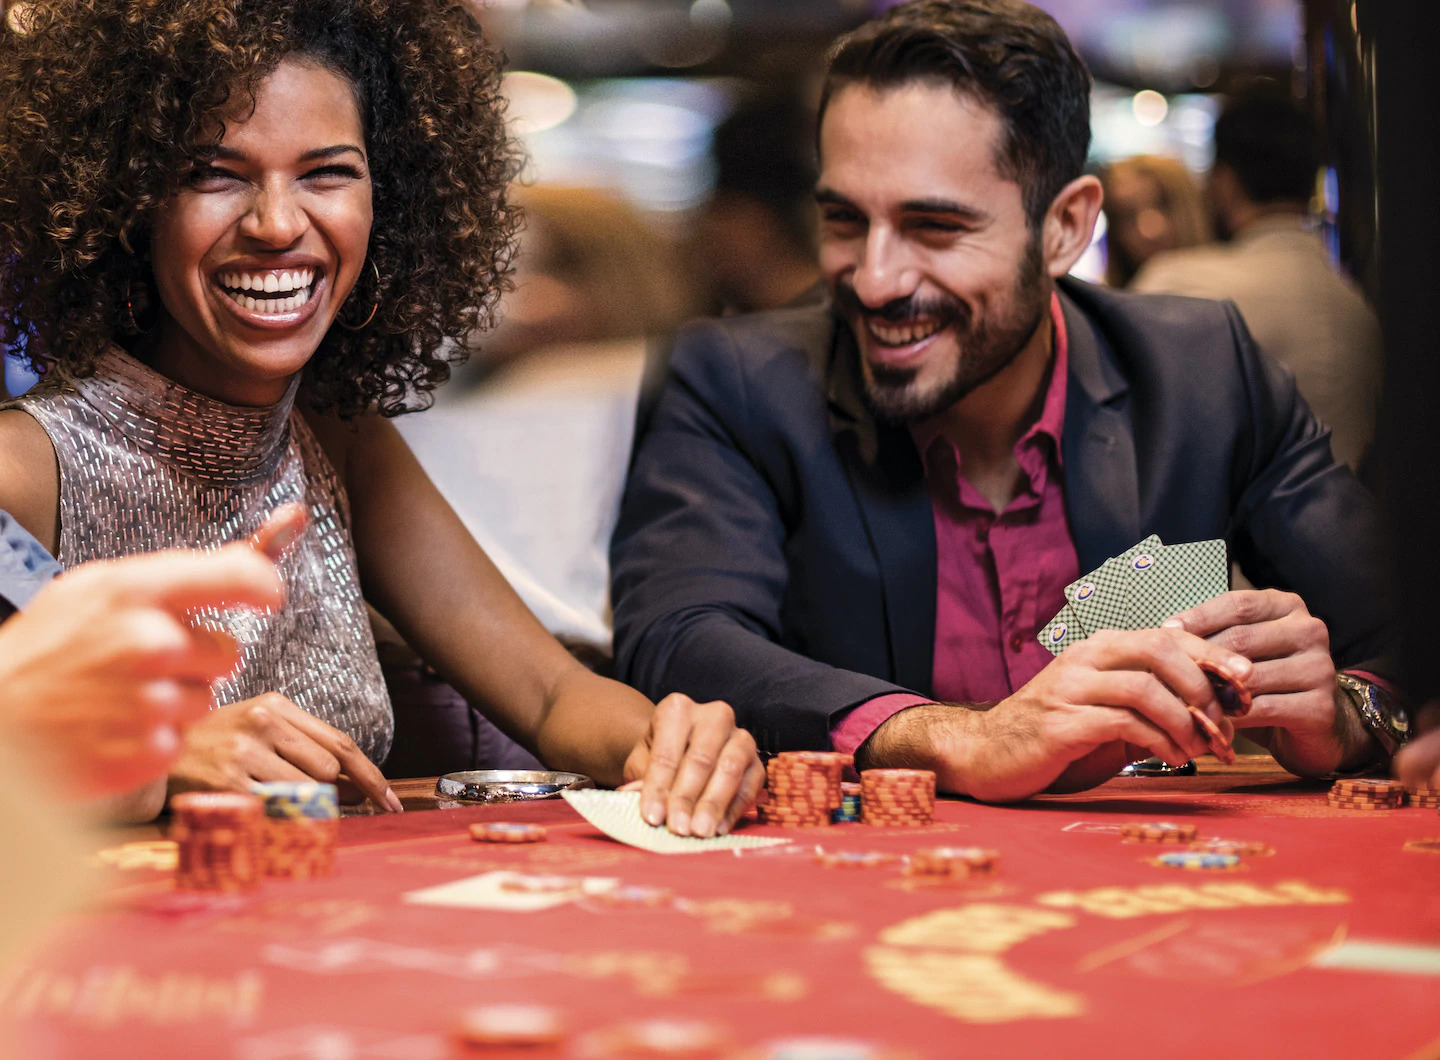 HOW TO PLAY ONLINE CASINO IS EASY TO WIN FOR BEGINNERS